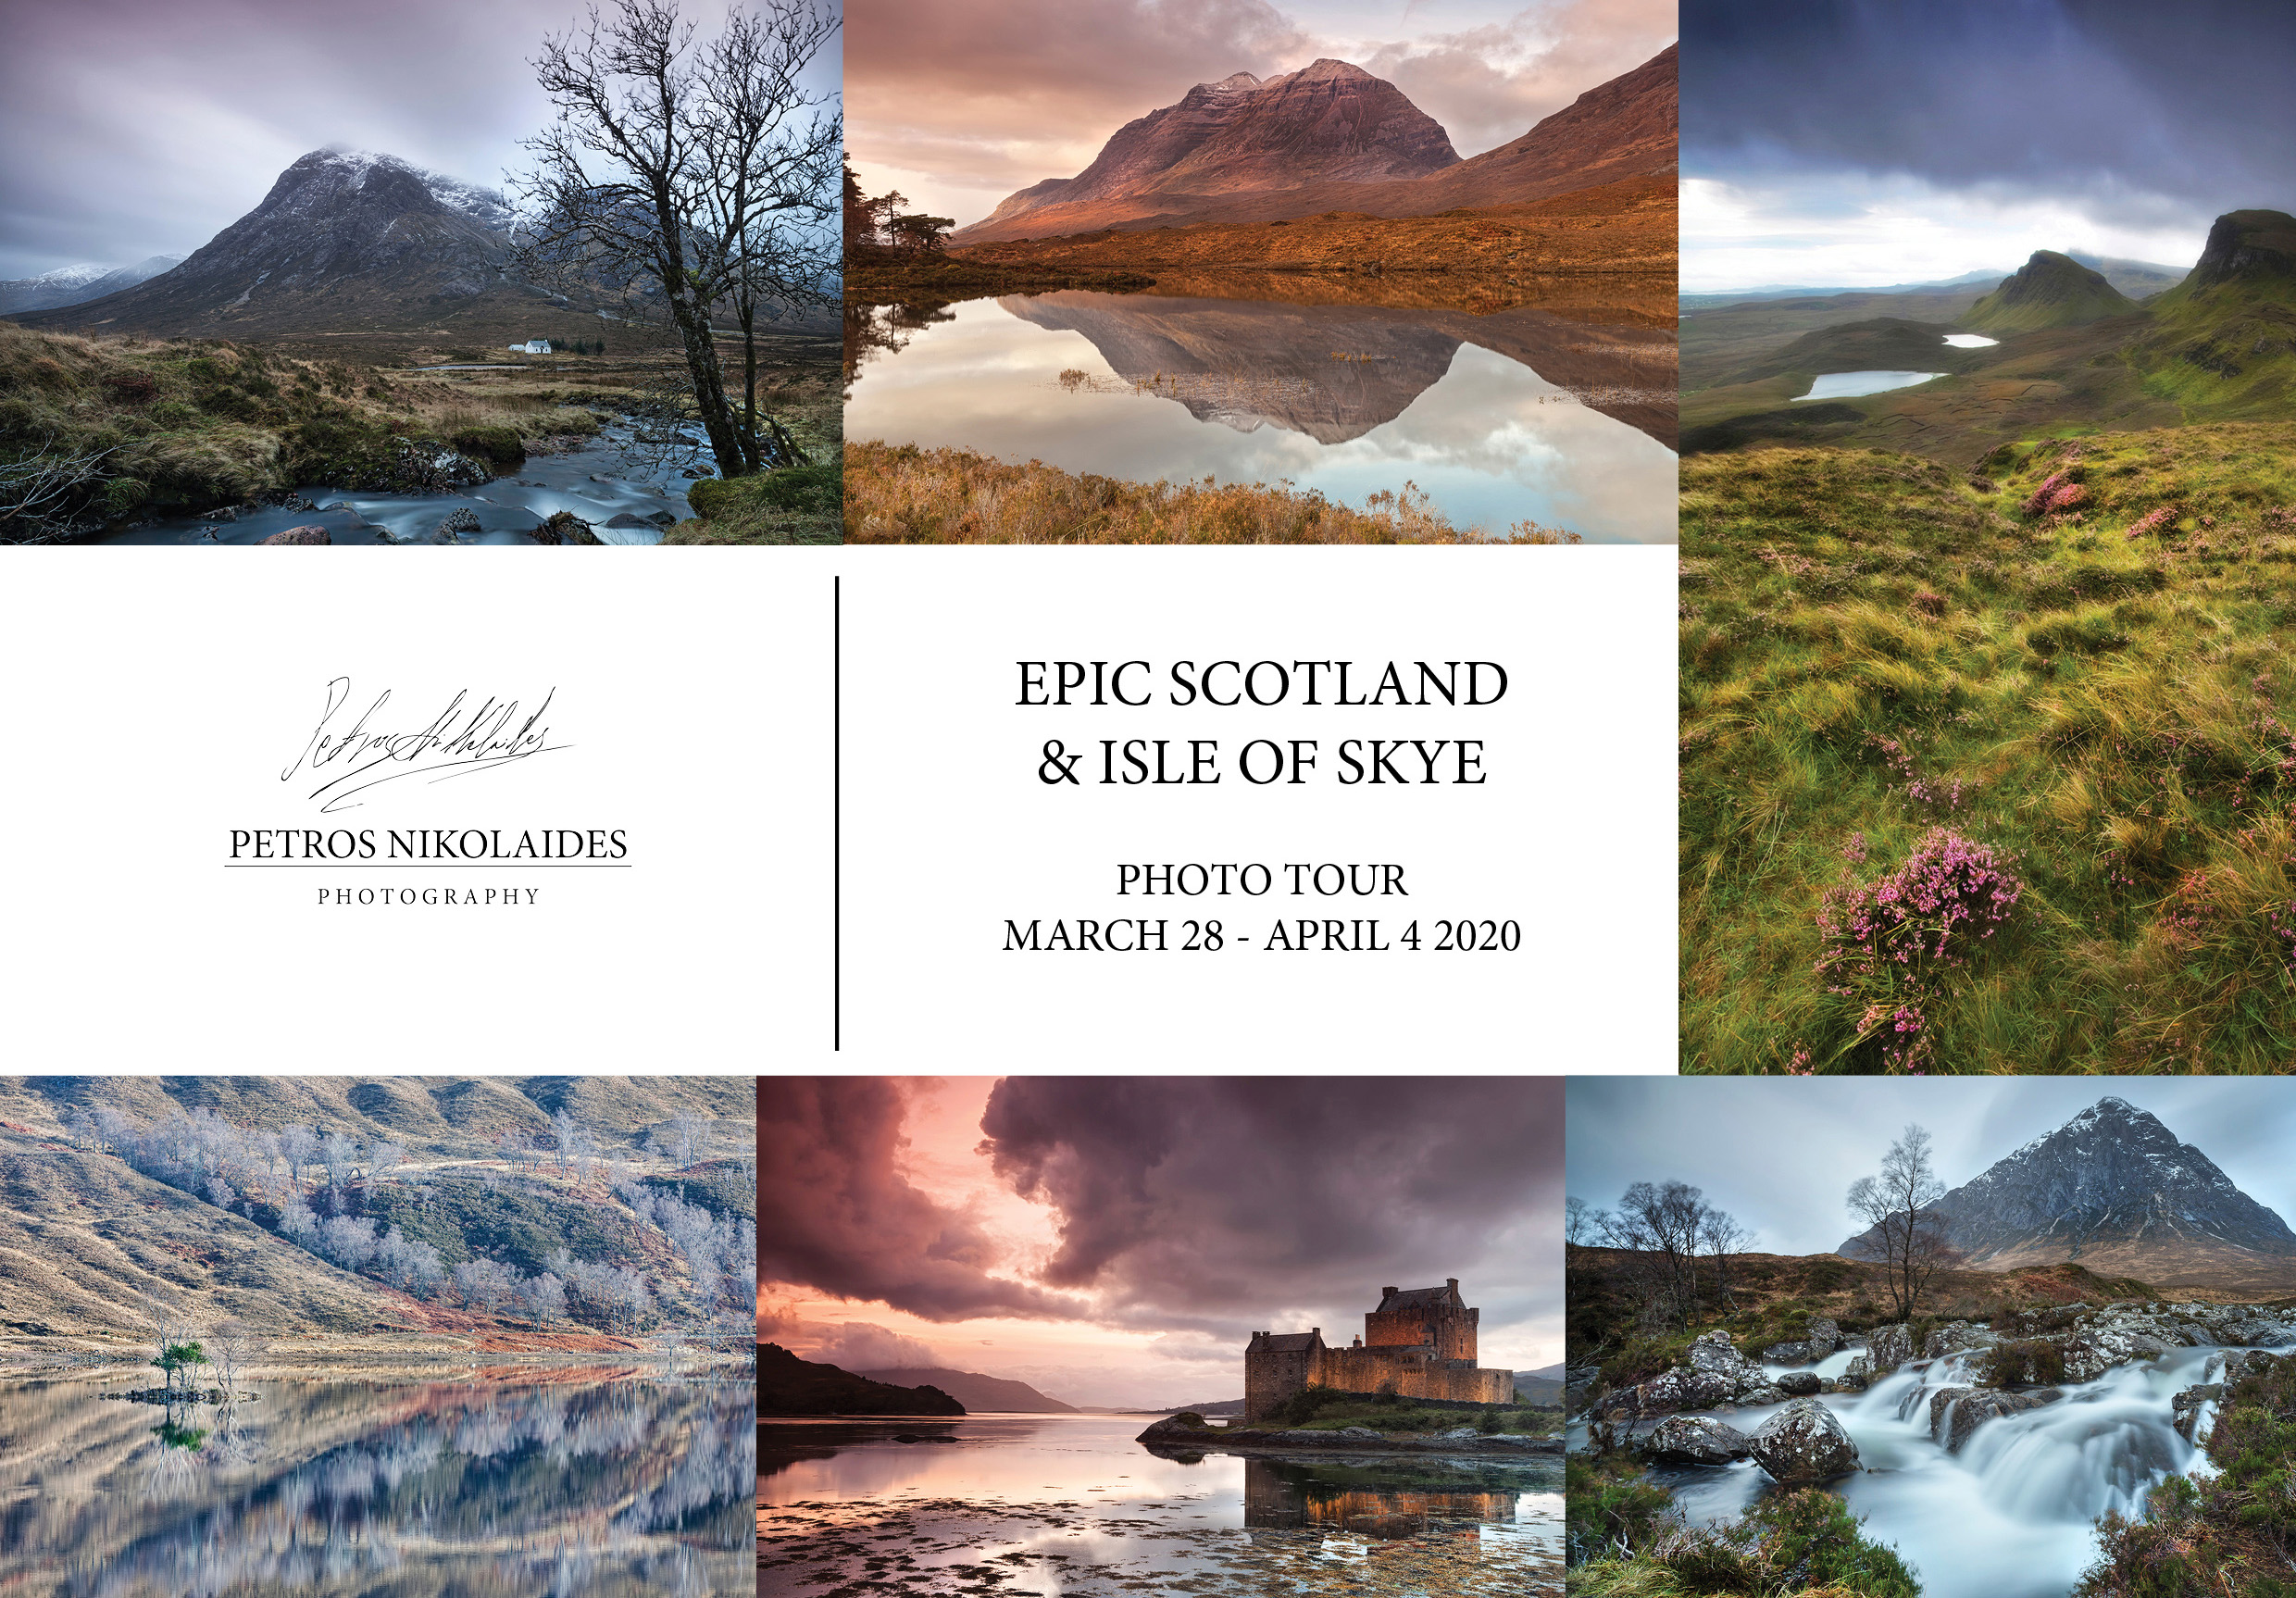 EPIC-SCOTLAND-&-ISLE-OF-SKYE-PHOTO-TOUR-MARCH-2020